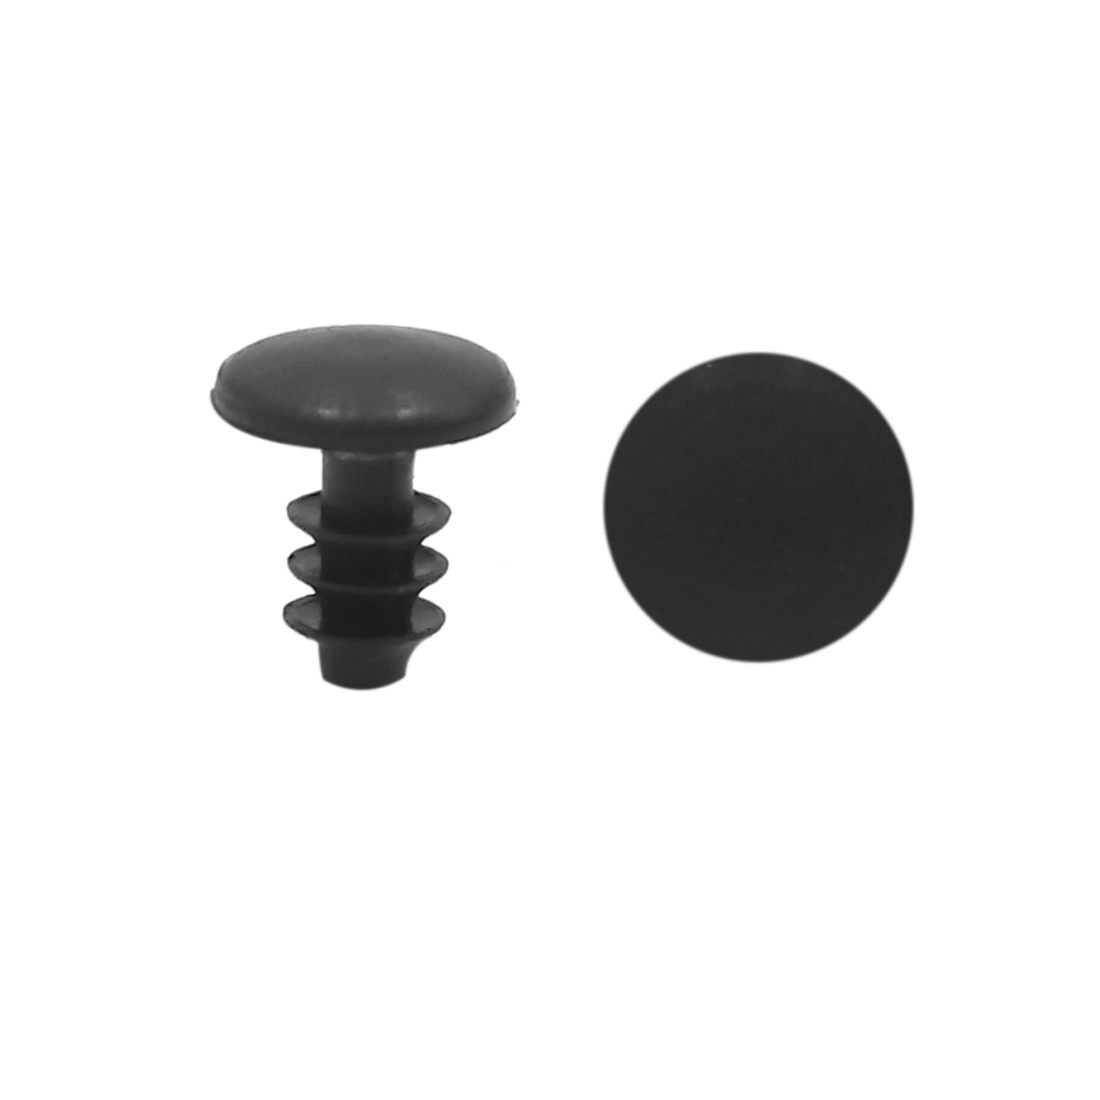 50pcs Black 5mm Hole Diameter Car Door Bumper Fender Plastic Rivets Fasteners